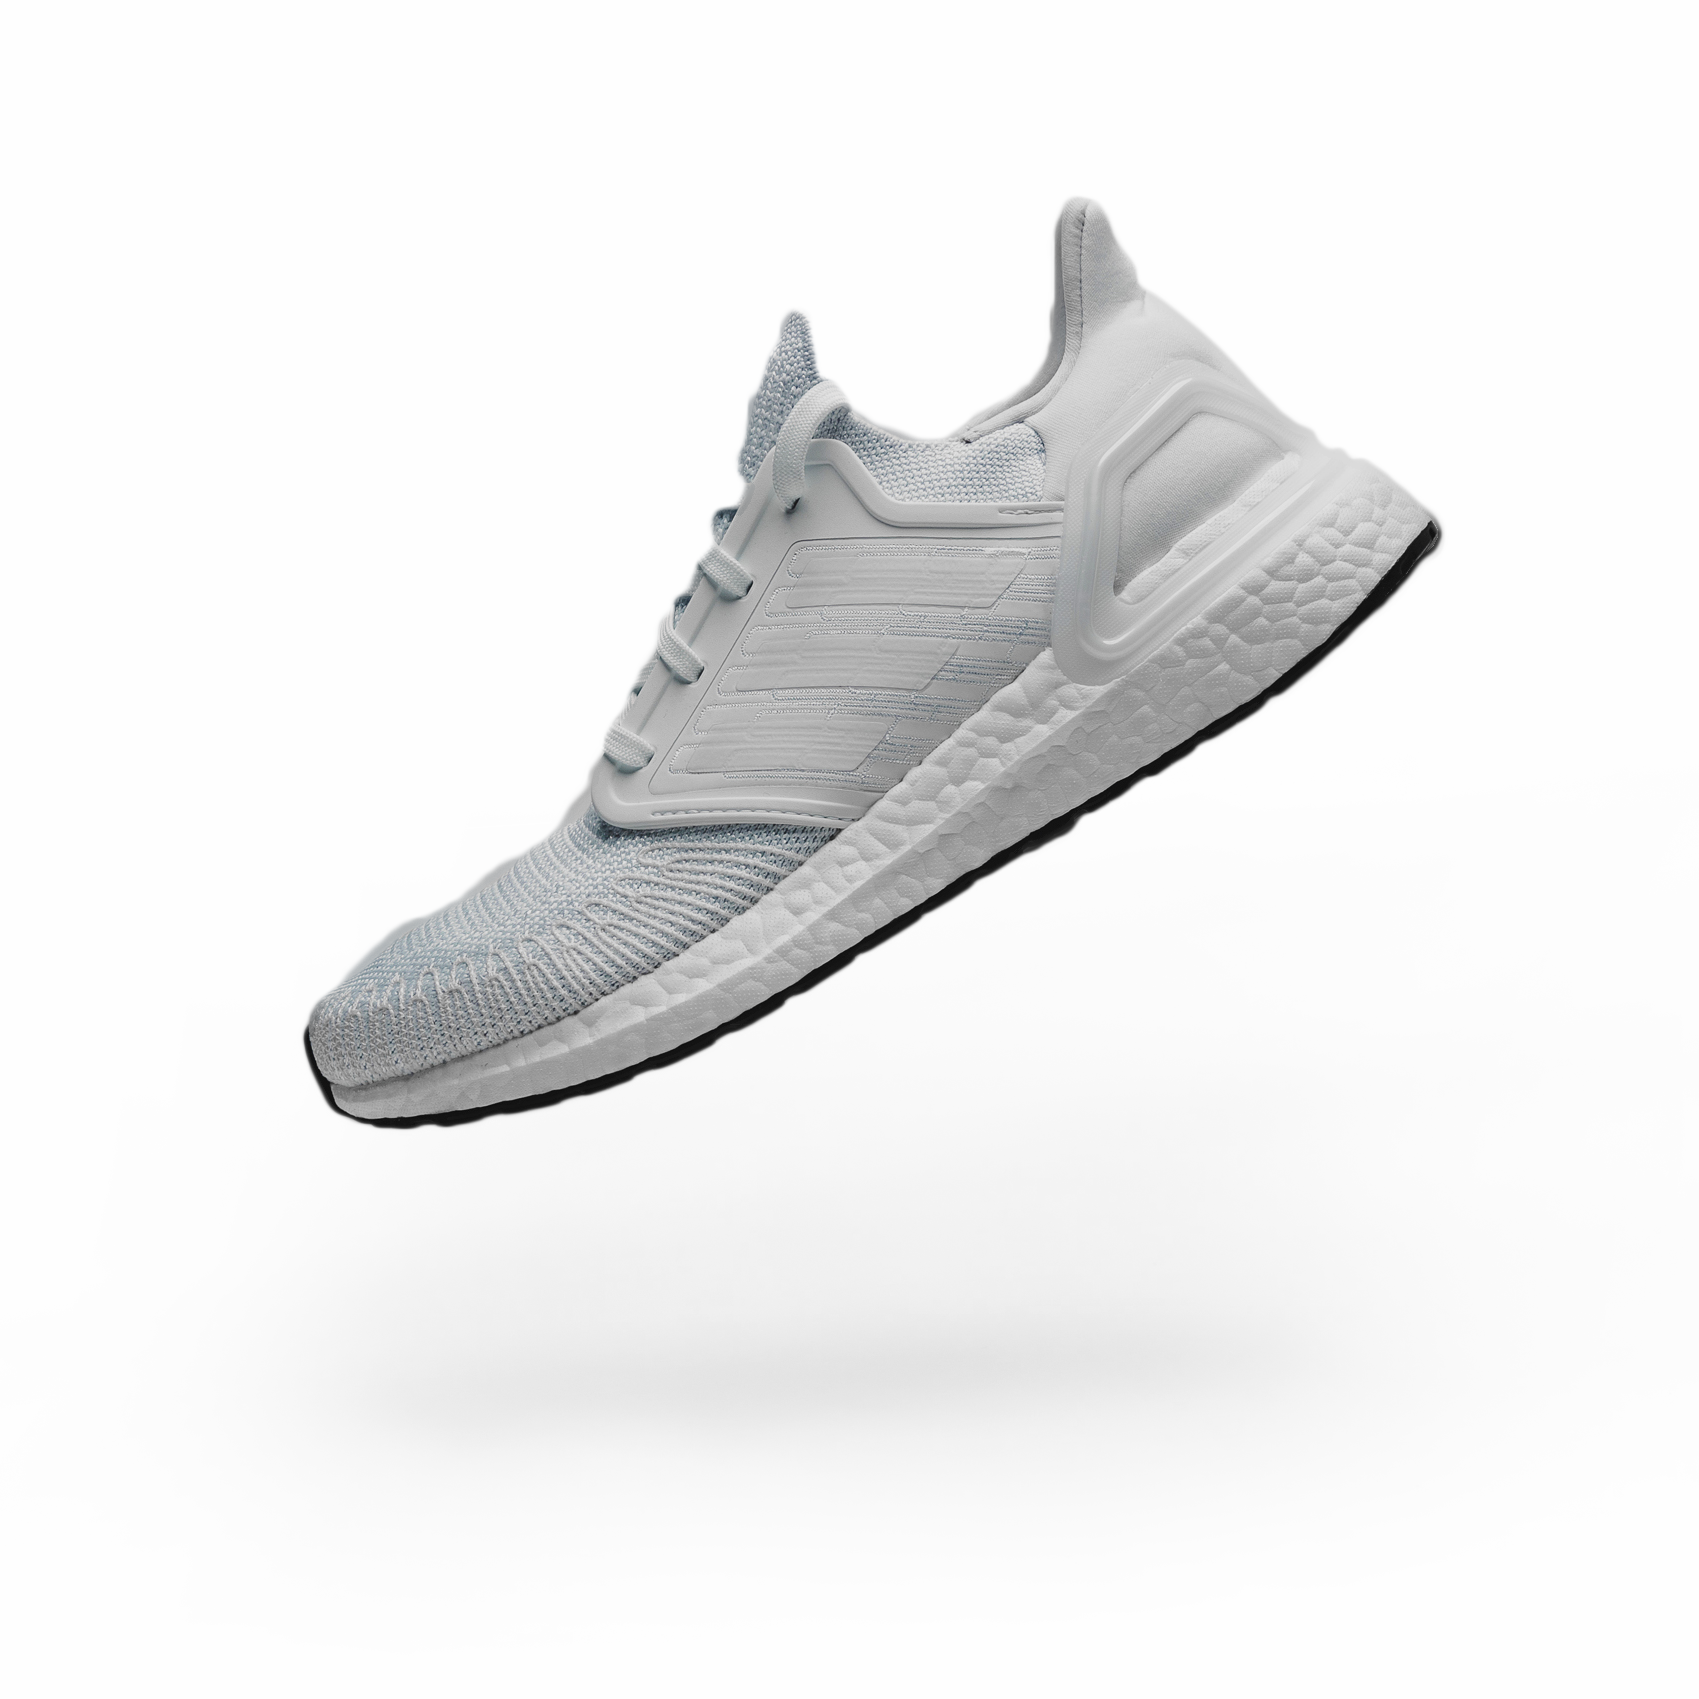 Single running shoe seen floating above the ground with the toe pointing to the ground and seen from the inner-ankle side of the show